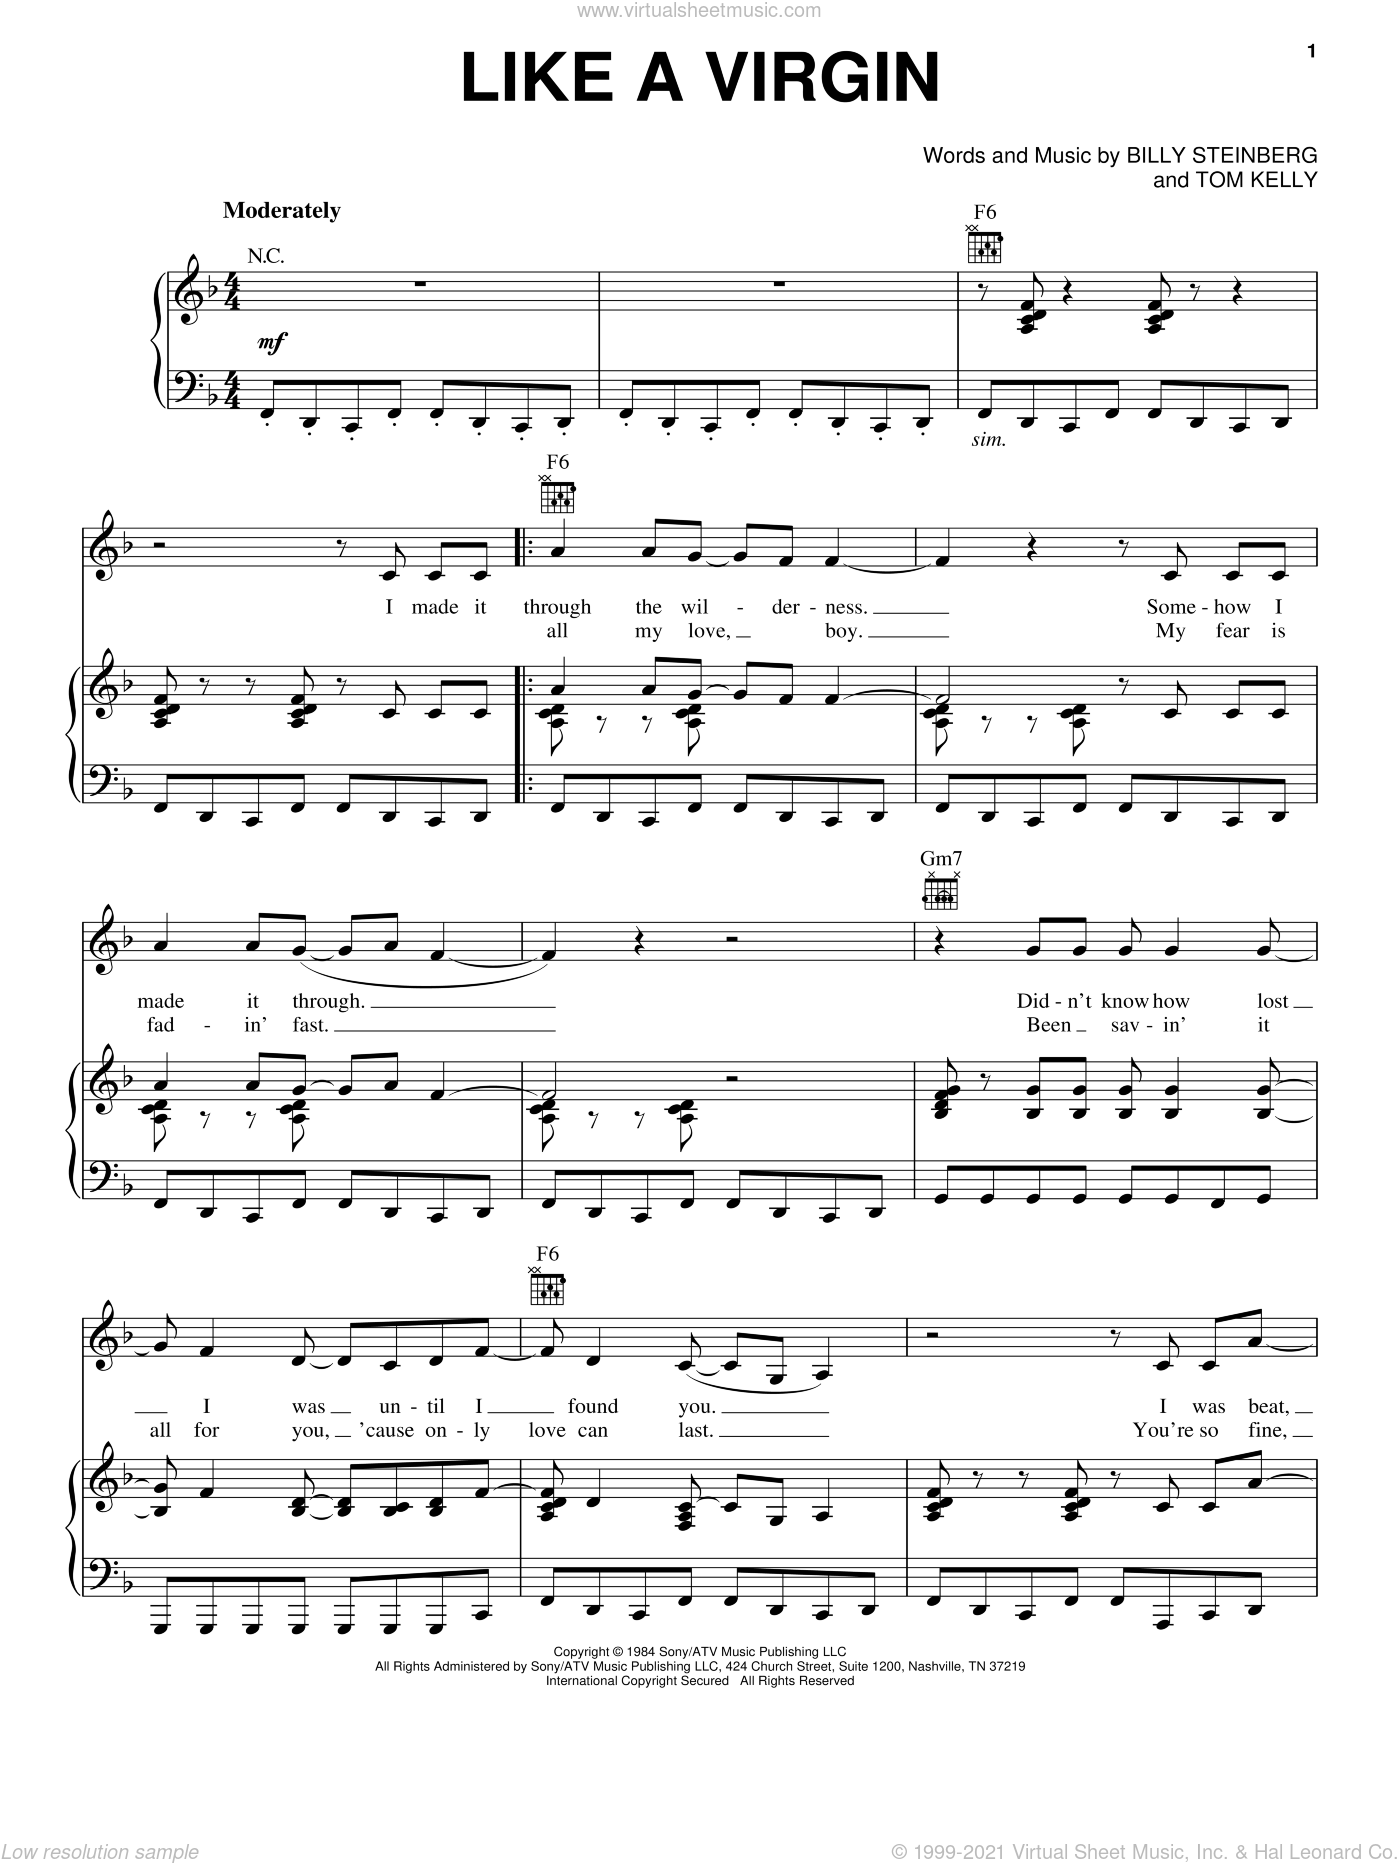 Like A Virgin sheet music for voice, piano or guitar by Madonna, Miscellaneous, Billy Steinberg and Tom Kelly, intermediate skill level